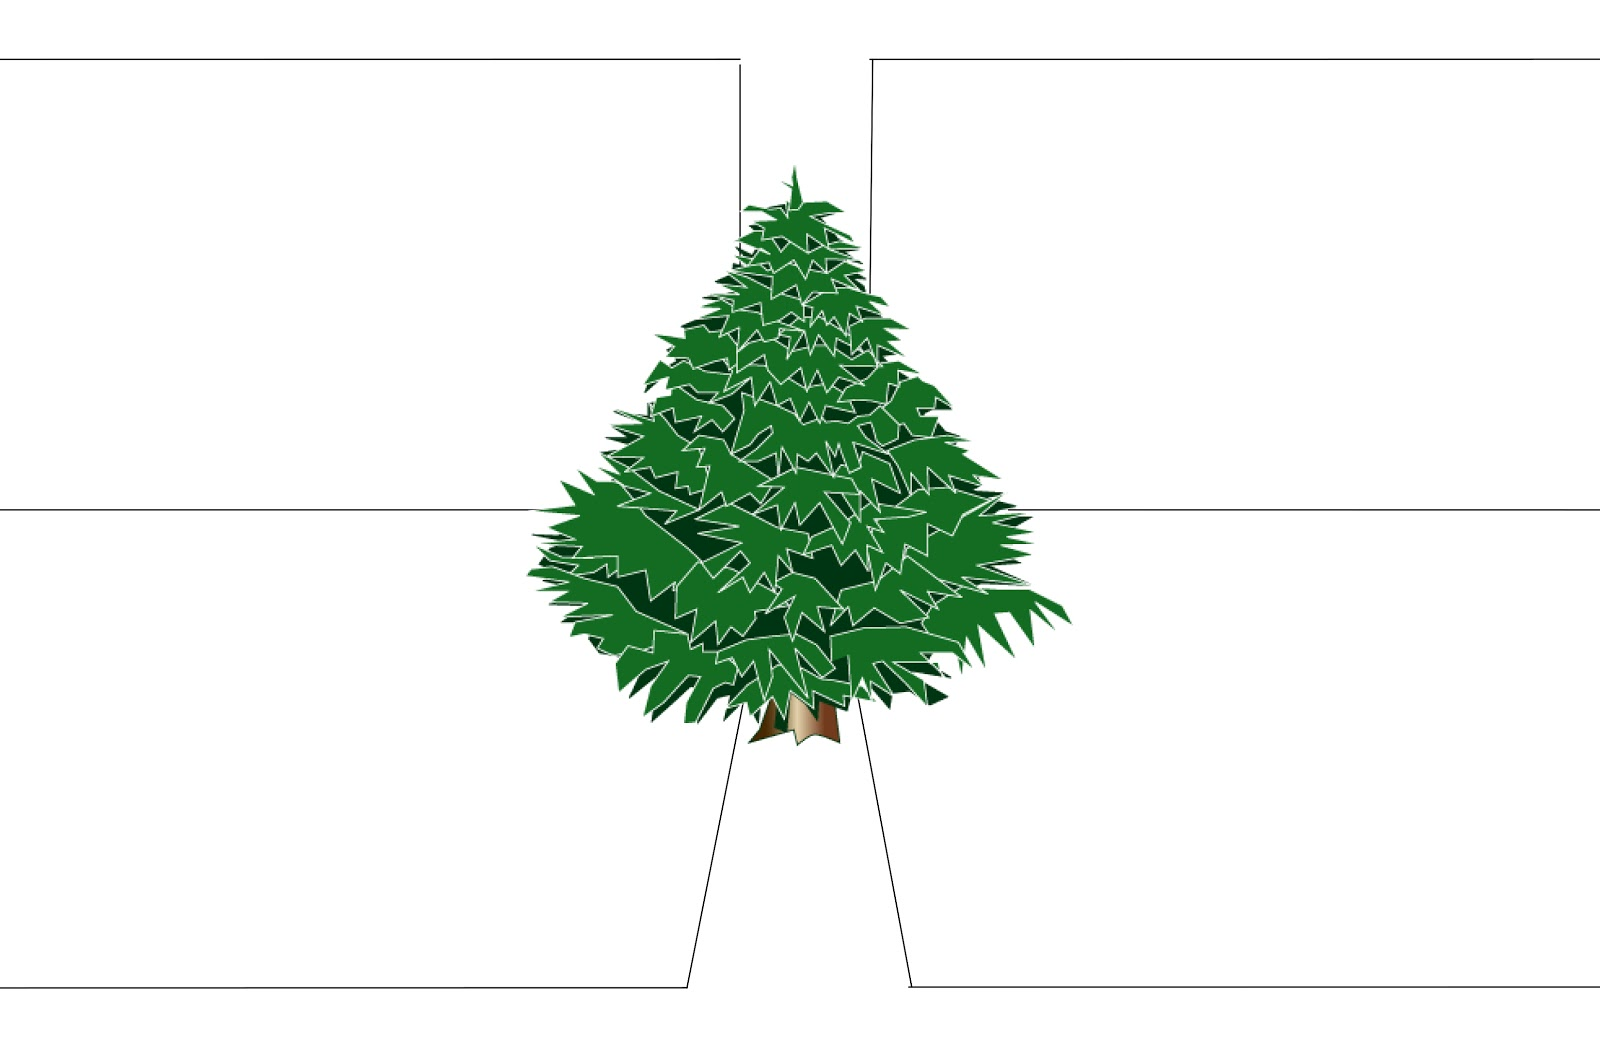 Pick Me, I'd Make The Best Christmas Tree: Persuasive